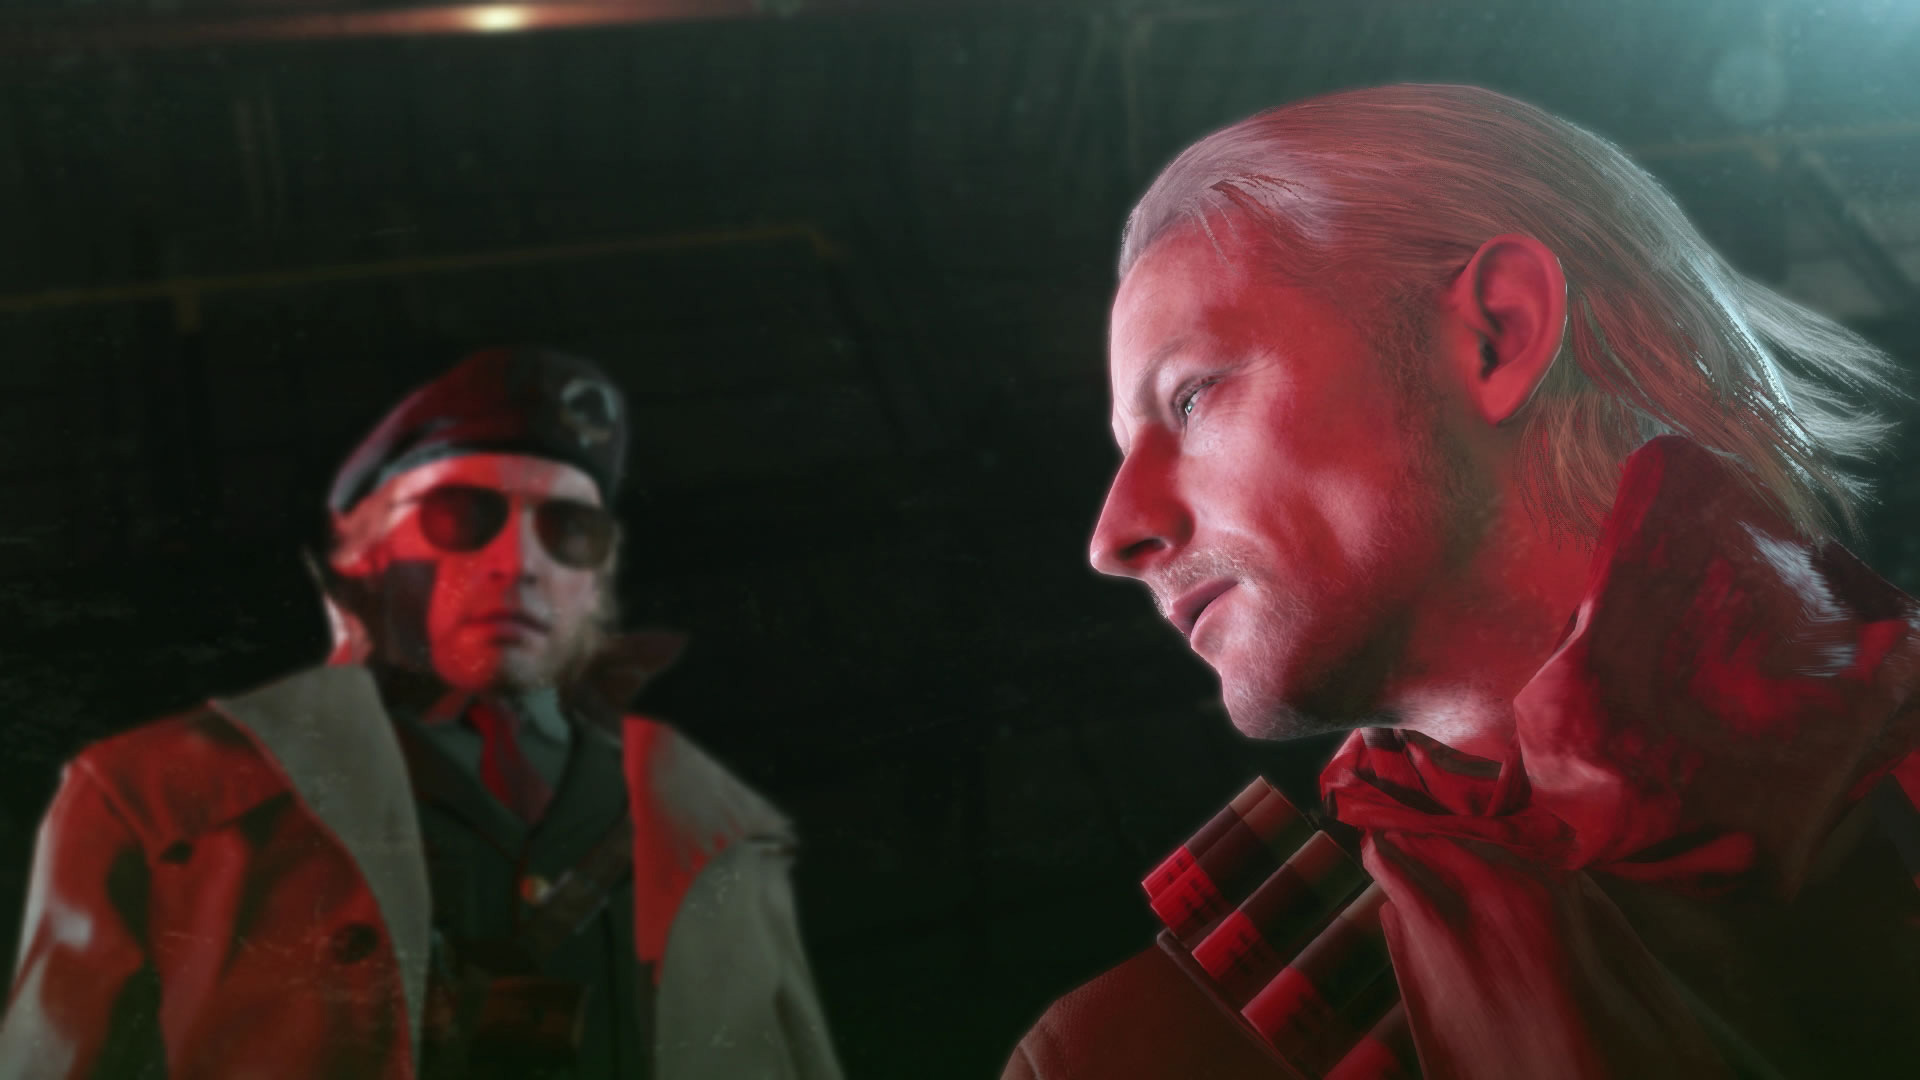 Metal-Gear-Solid-V-The-Phantom-Pain-E3-2015-Screen-Ocelot-and-Kaz